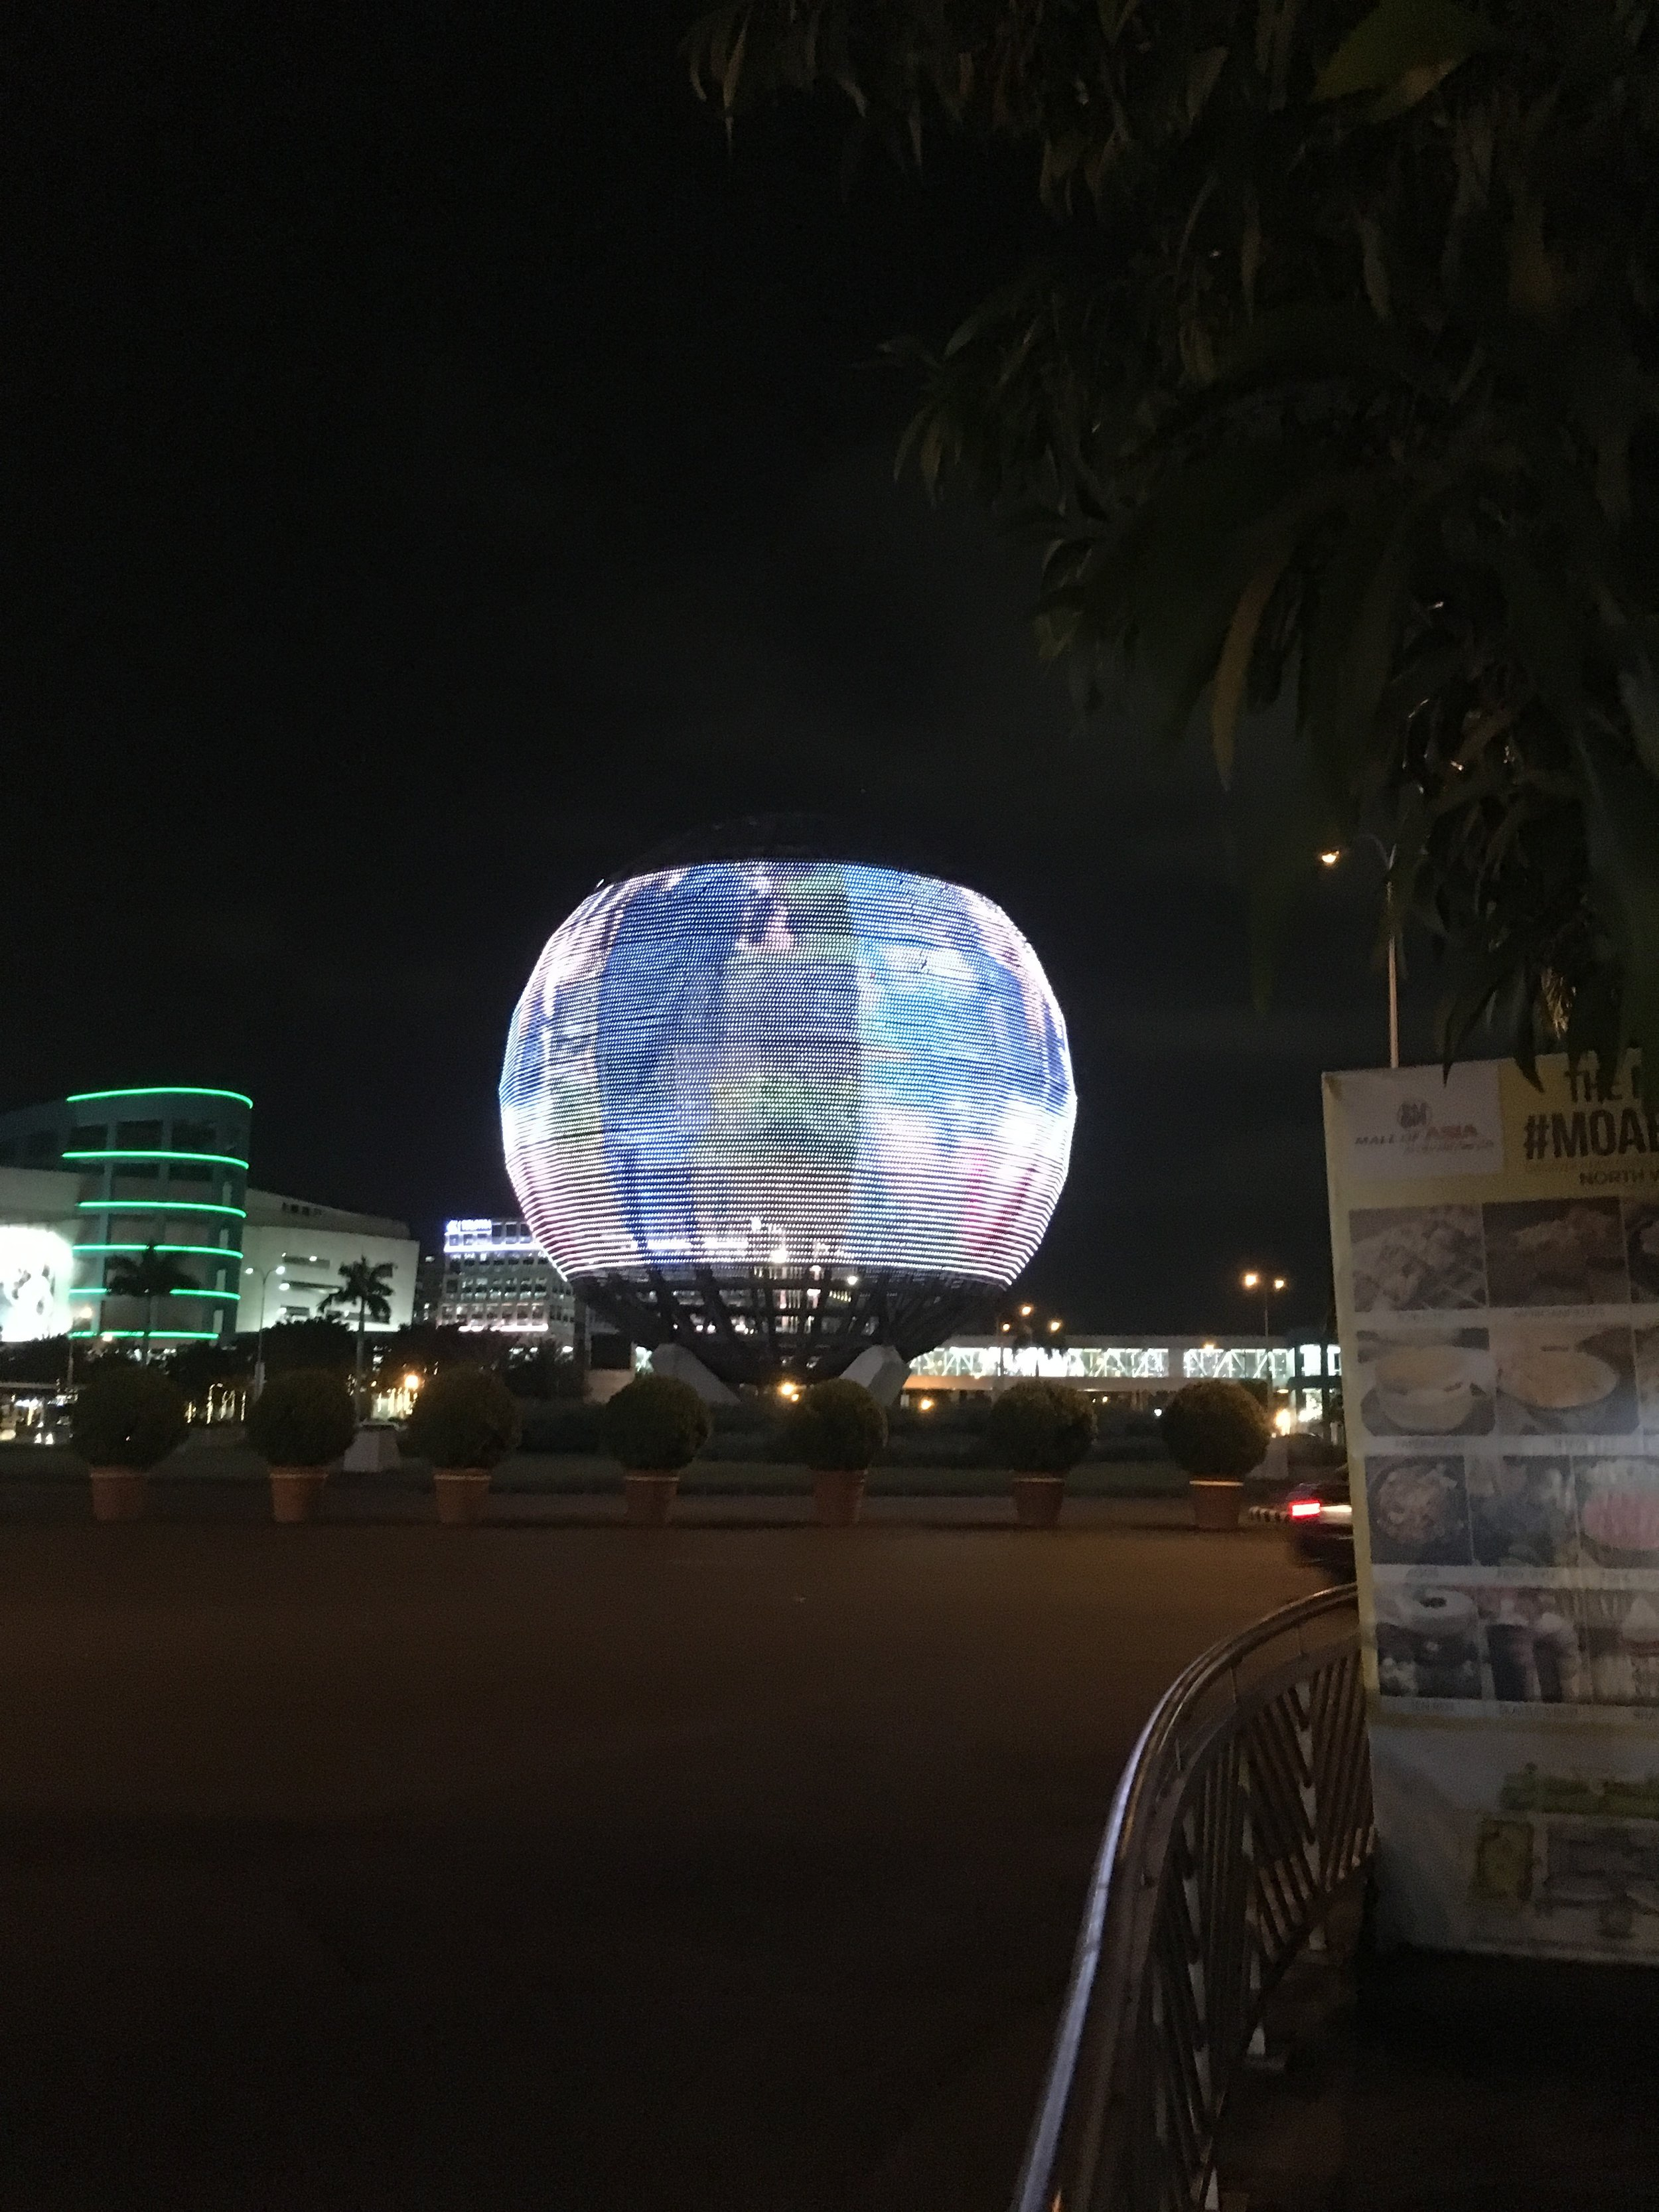 Globe at the mall that changes colors